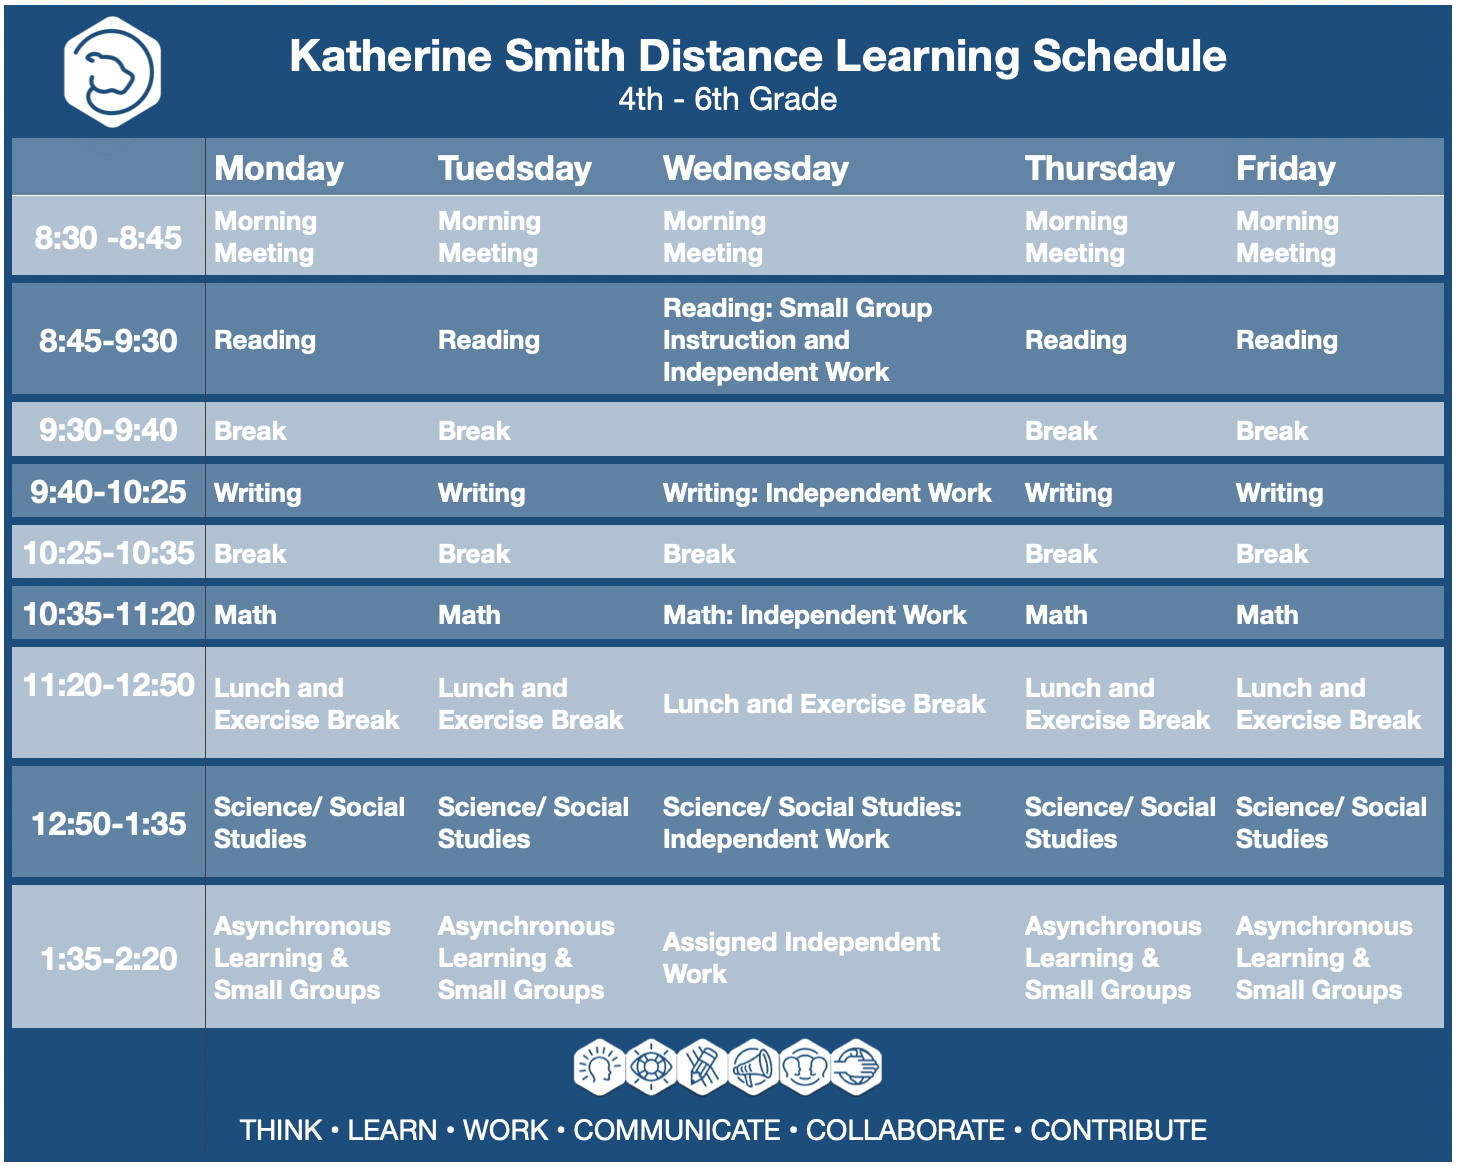 Distance Learning Schedule Grades 4-6